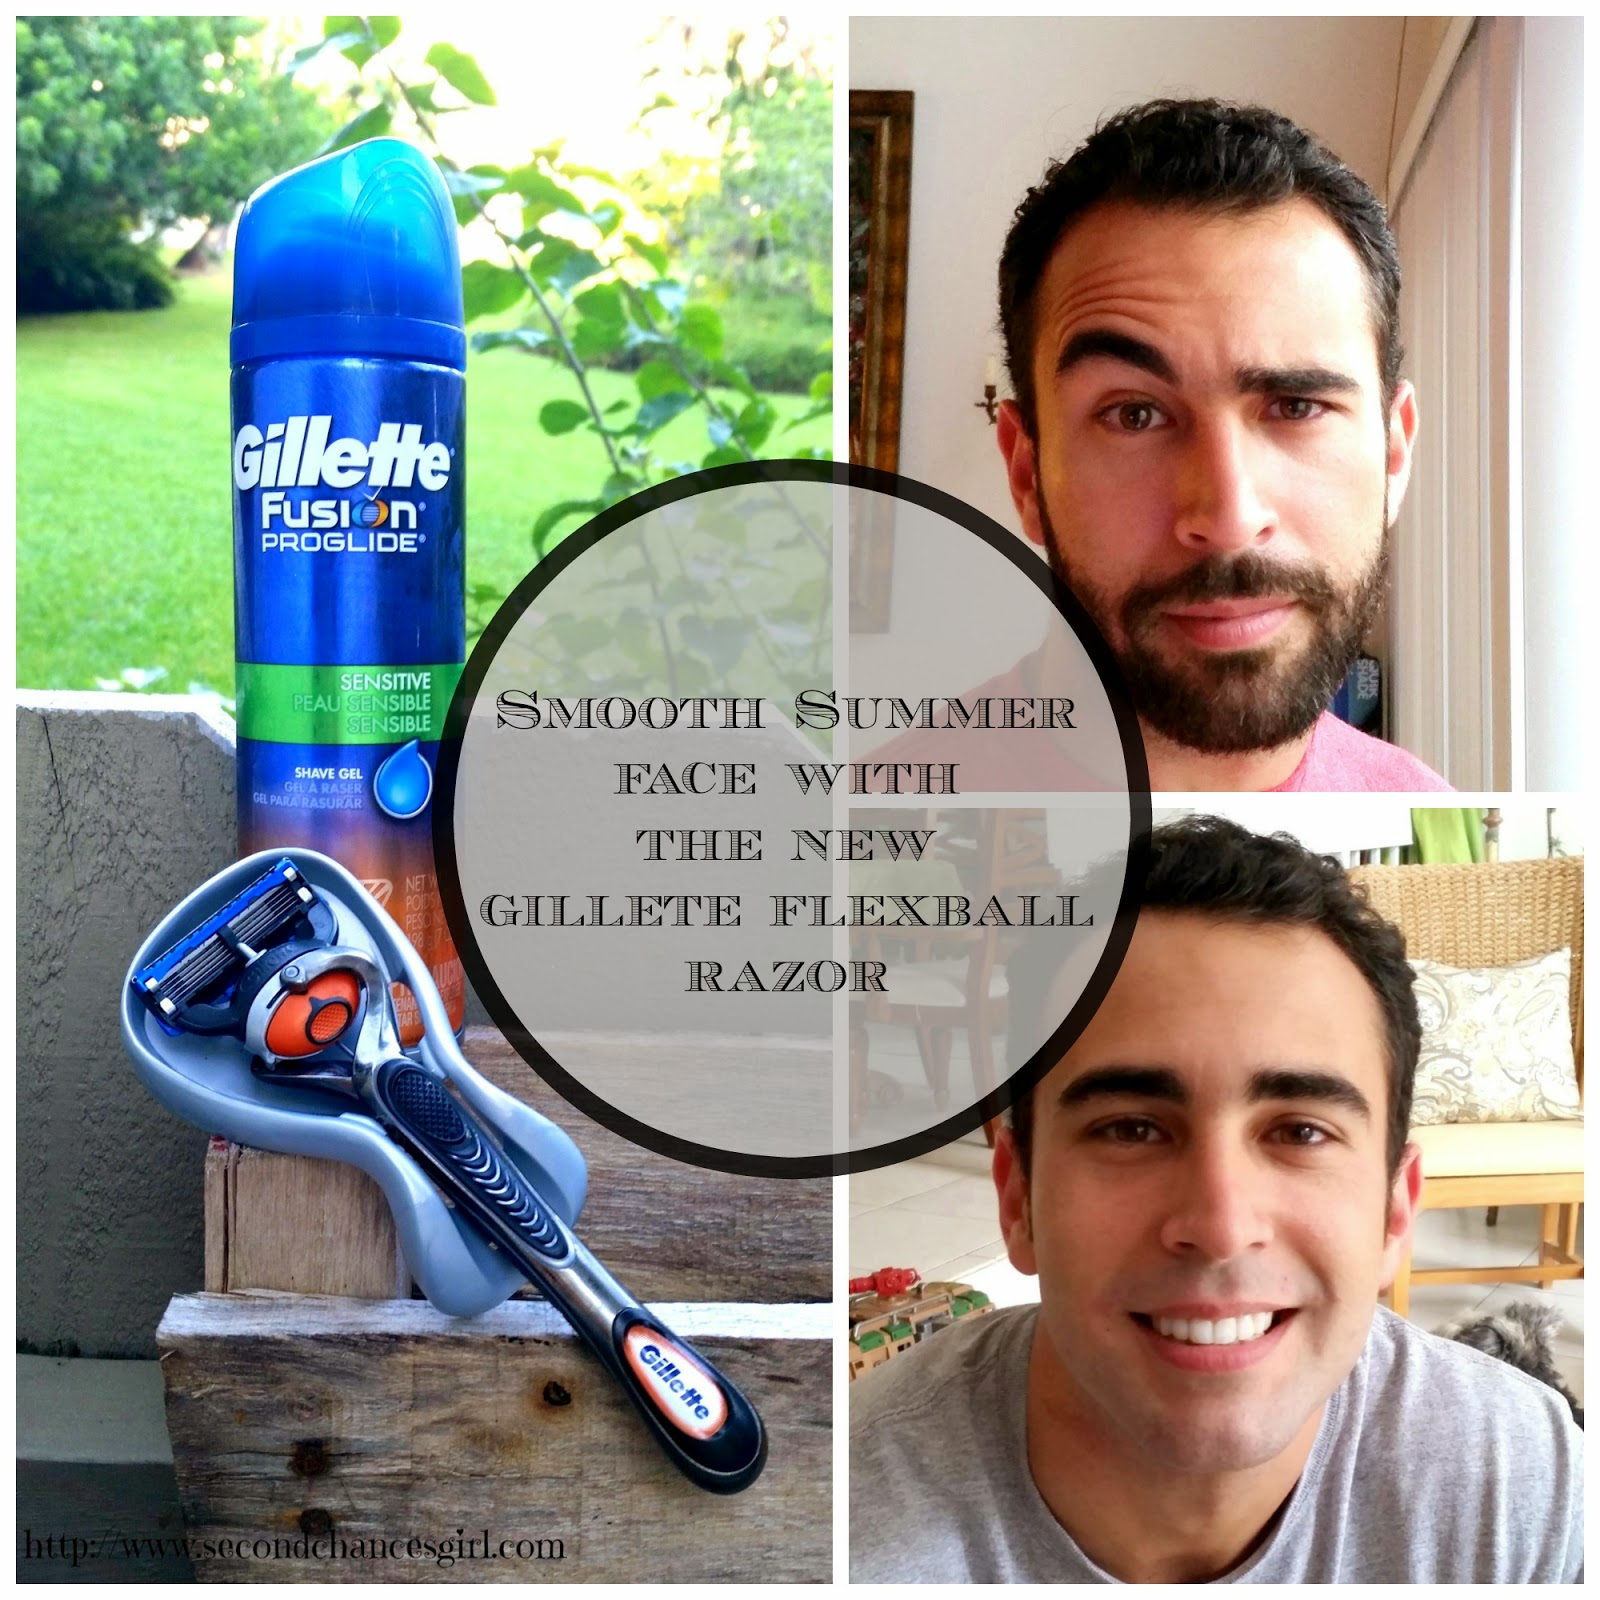 Smooth Summer Face With The New Gillette Flexball Razor! #SmoothSummer #shop